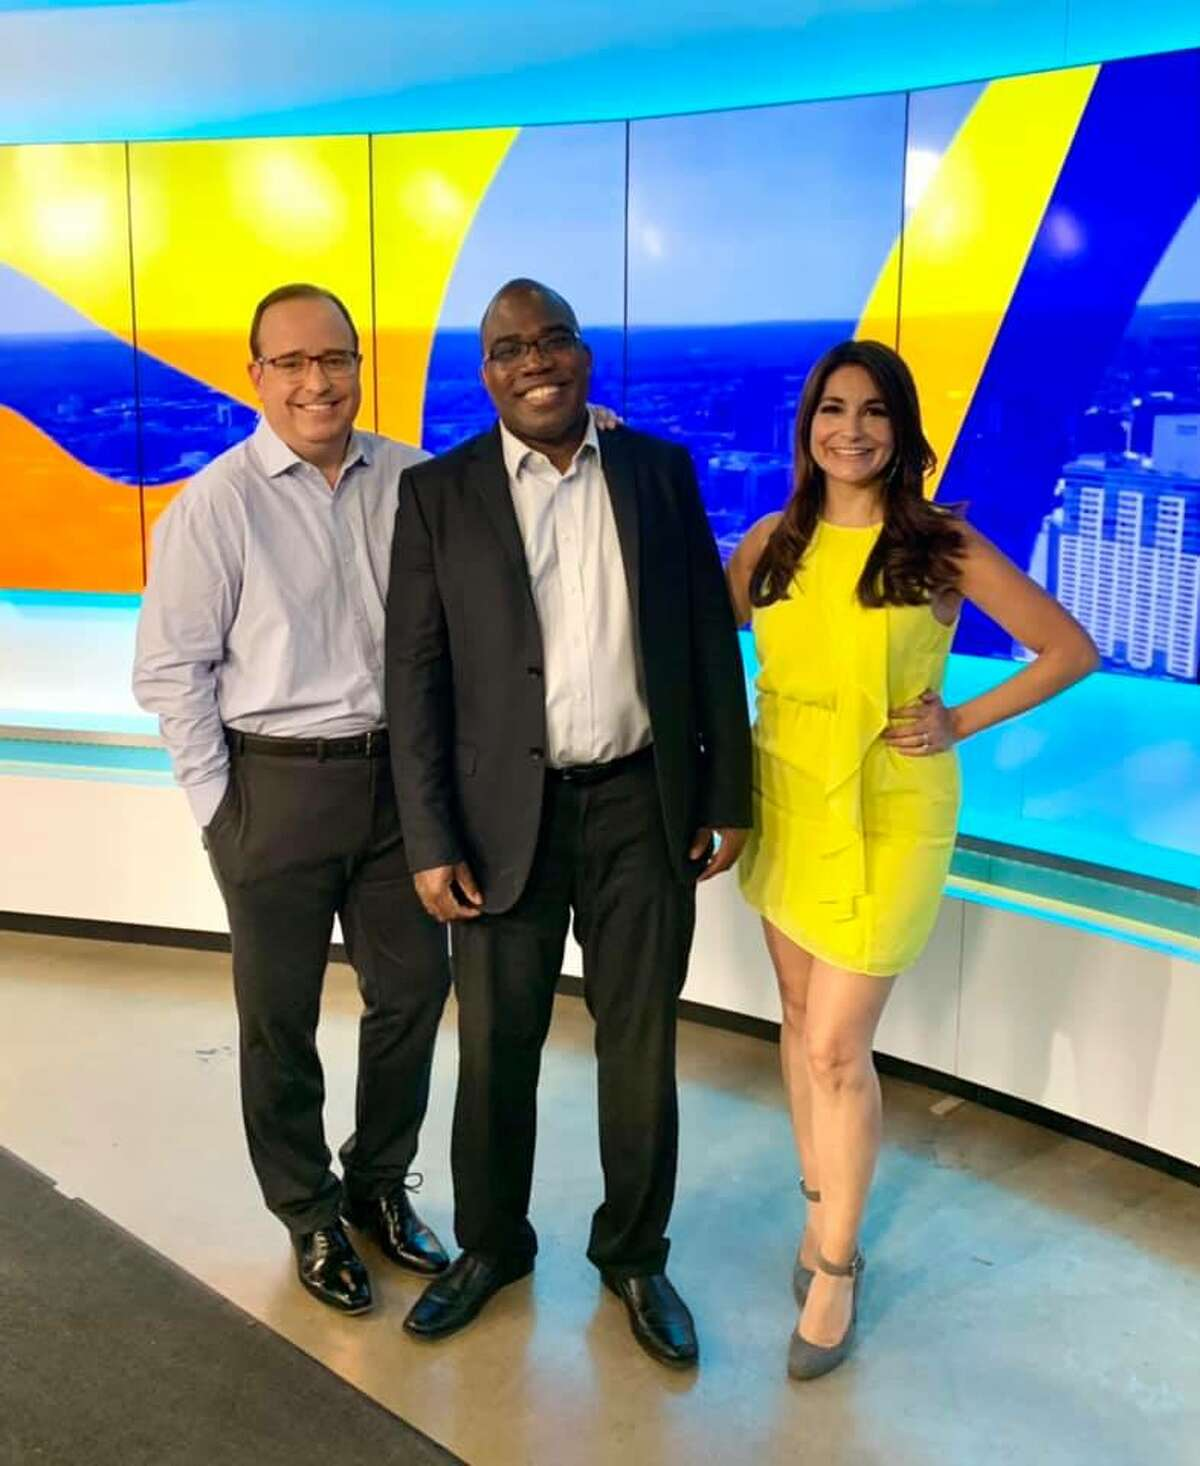 Samuel King will join the evening newscasts on KSAT 12. He will be leaving his Good Morning San Antonio